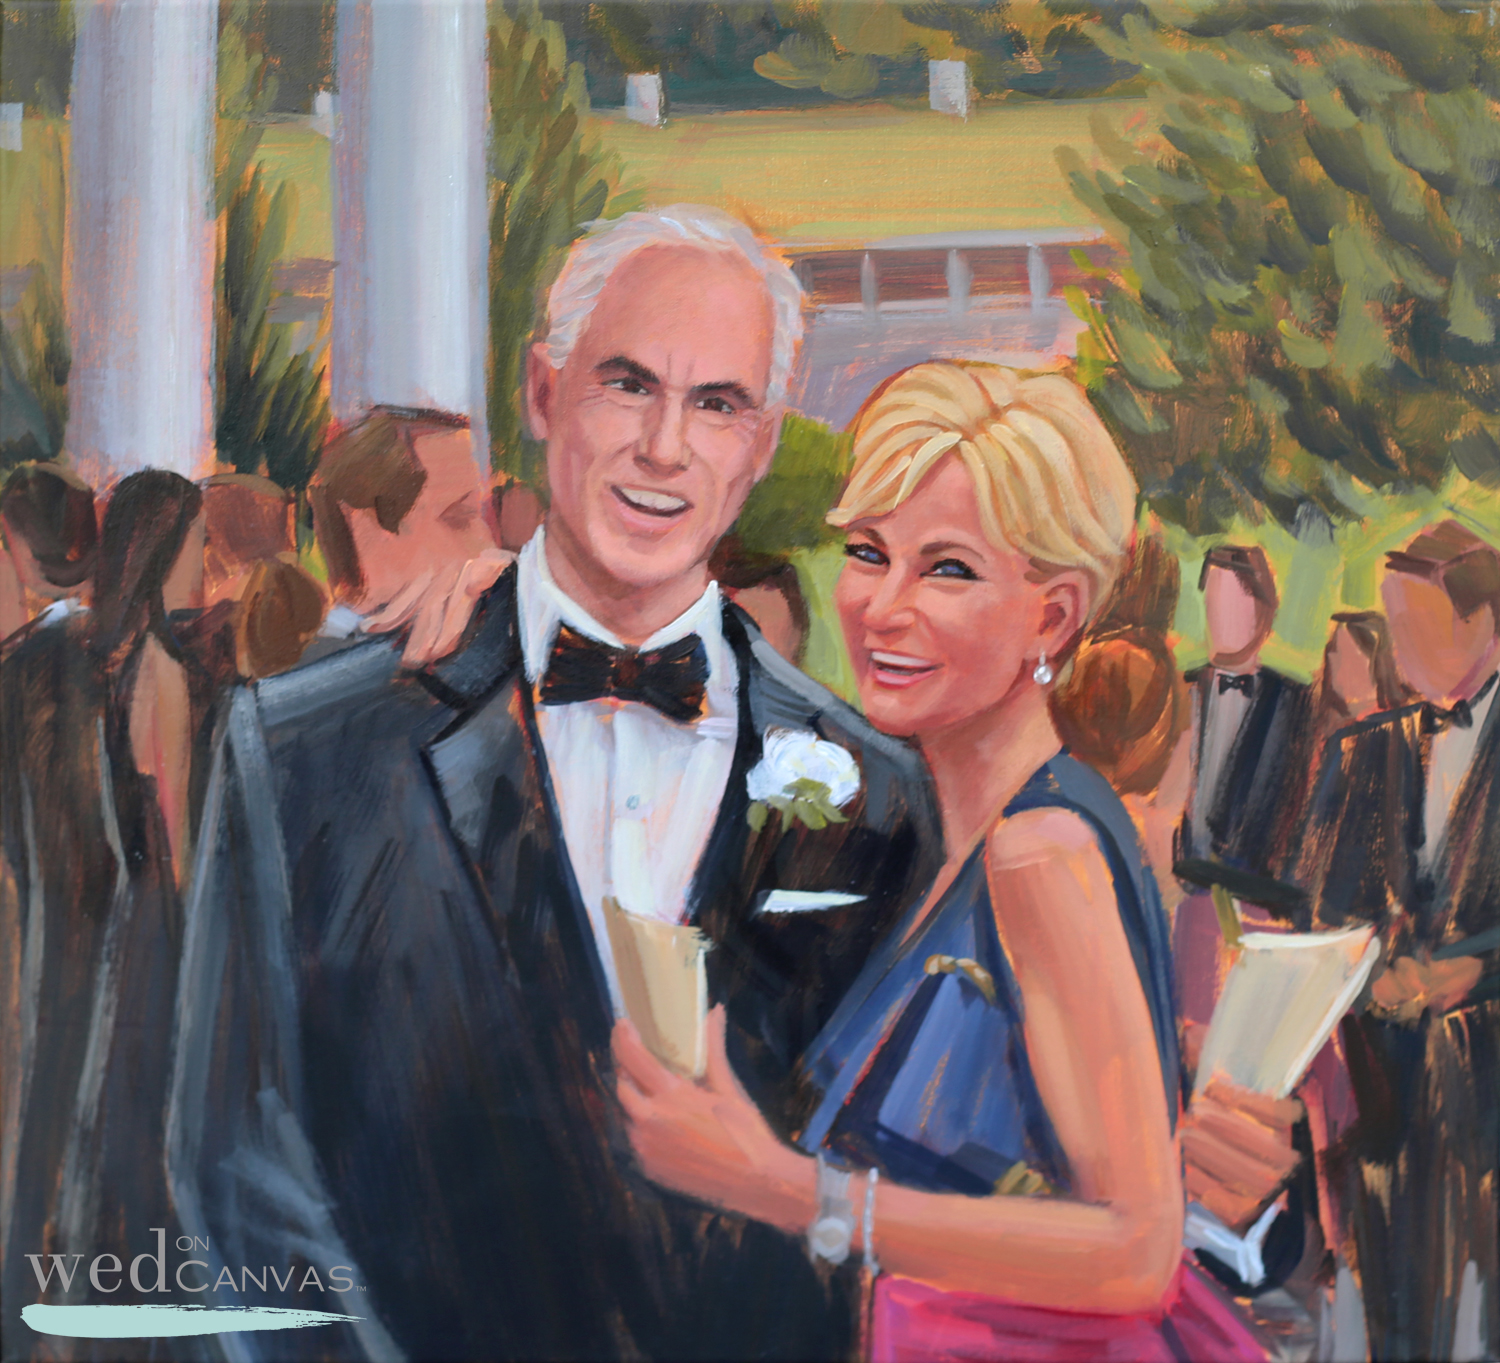 Alexandra commissioned Ben to capture a portrait of her parents that was created merging several photos together after the wedding day.  Her thought was that this would be the perfect Thank You for hosting the wedding of her dreams!